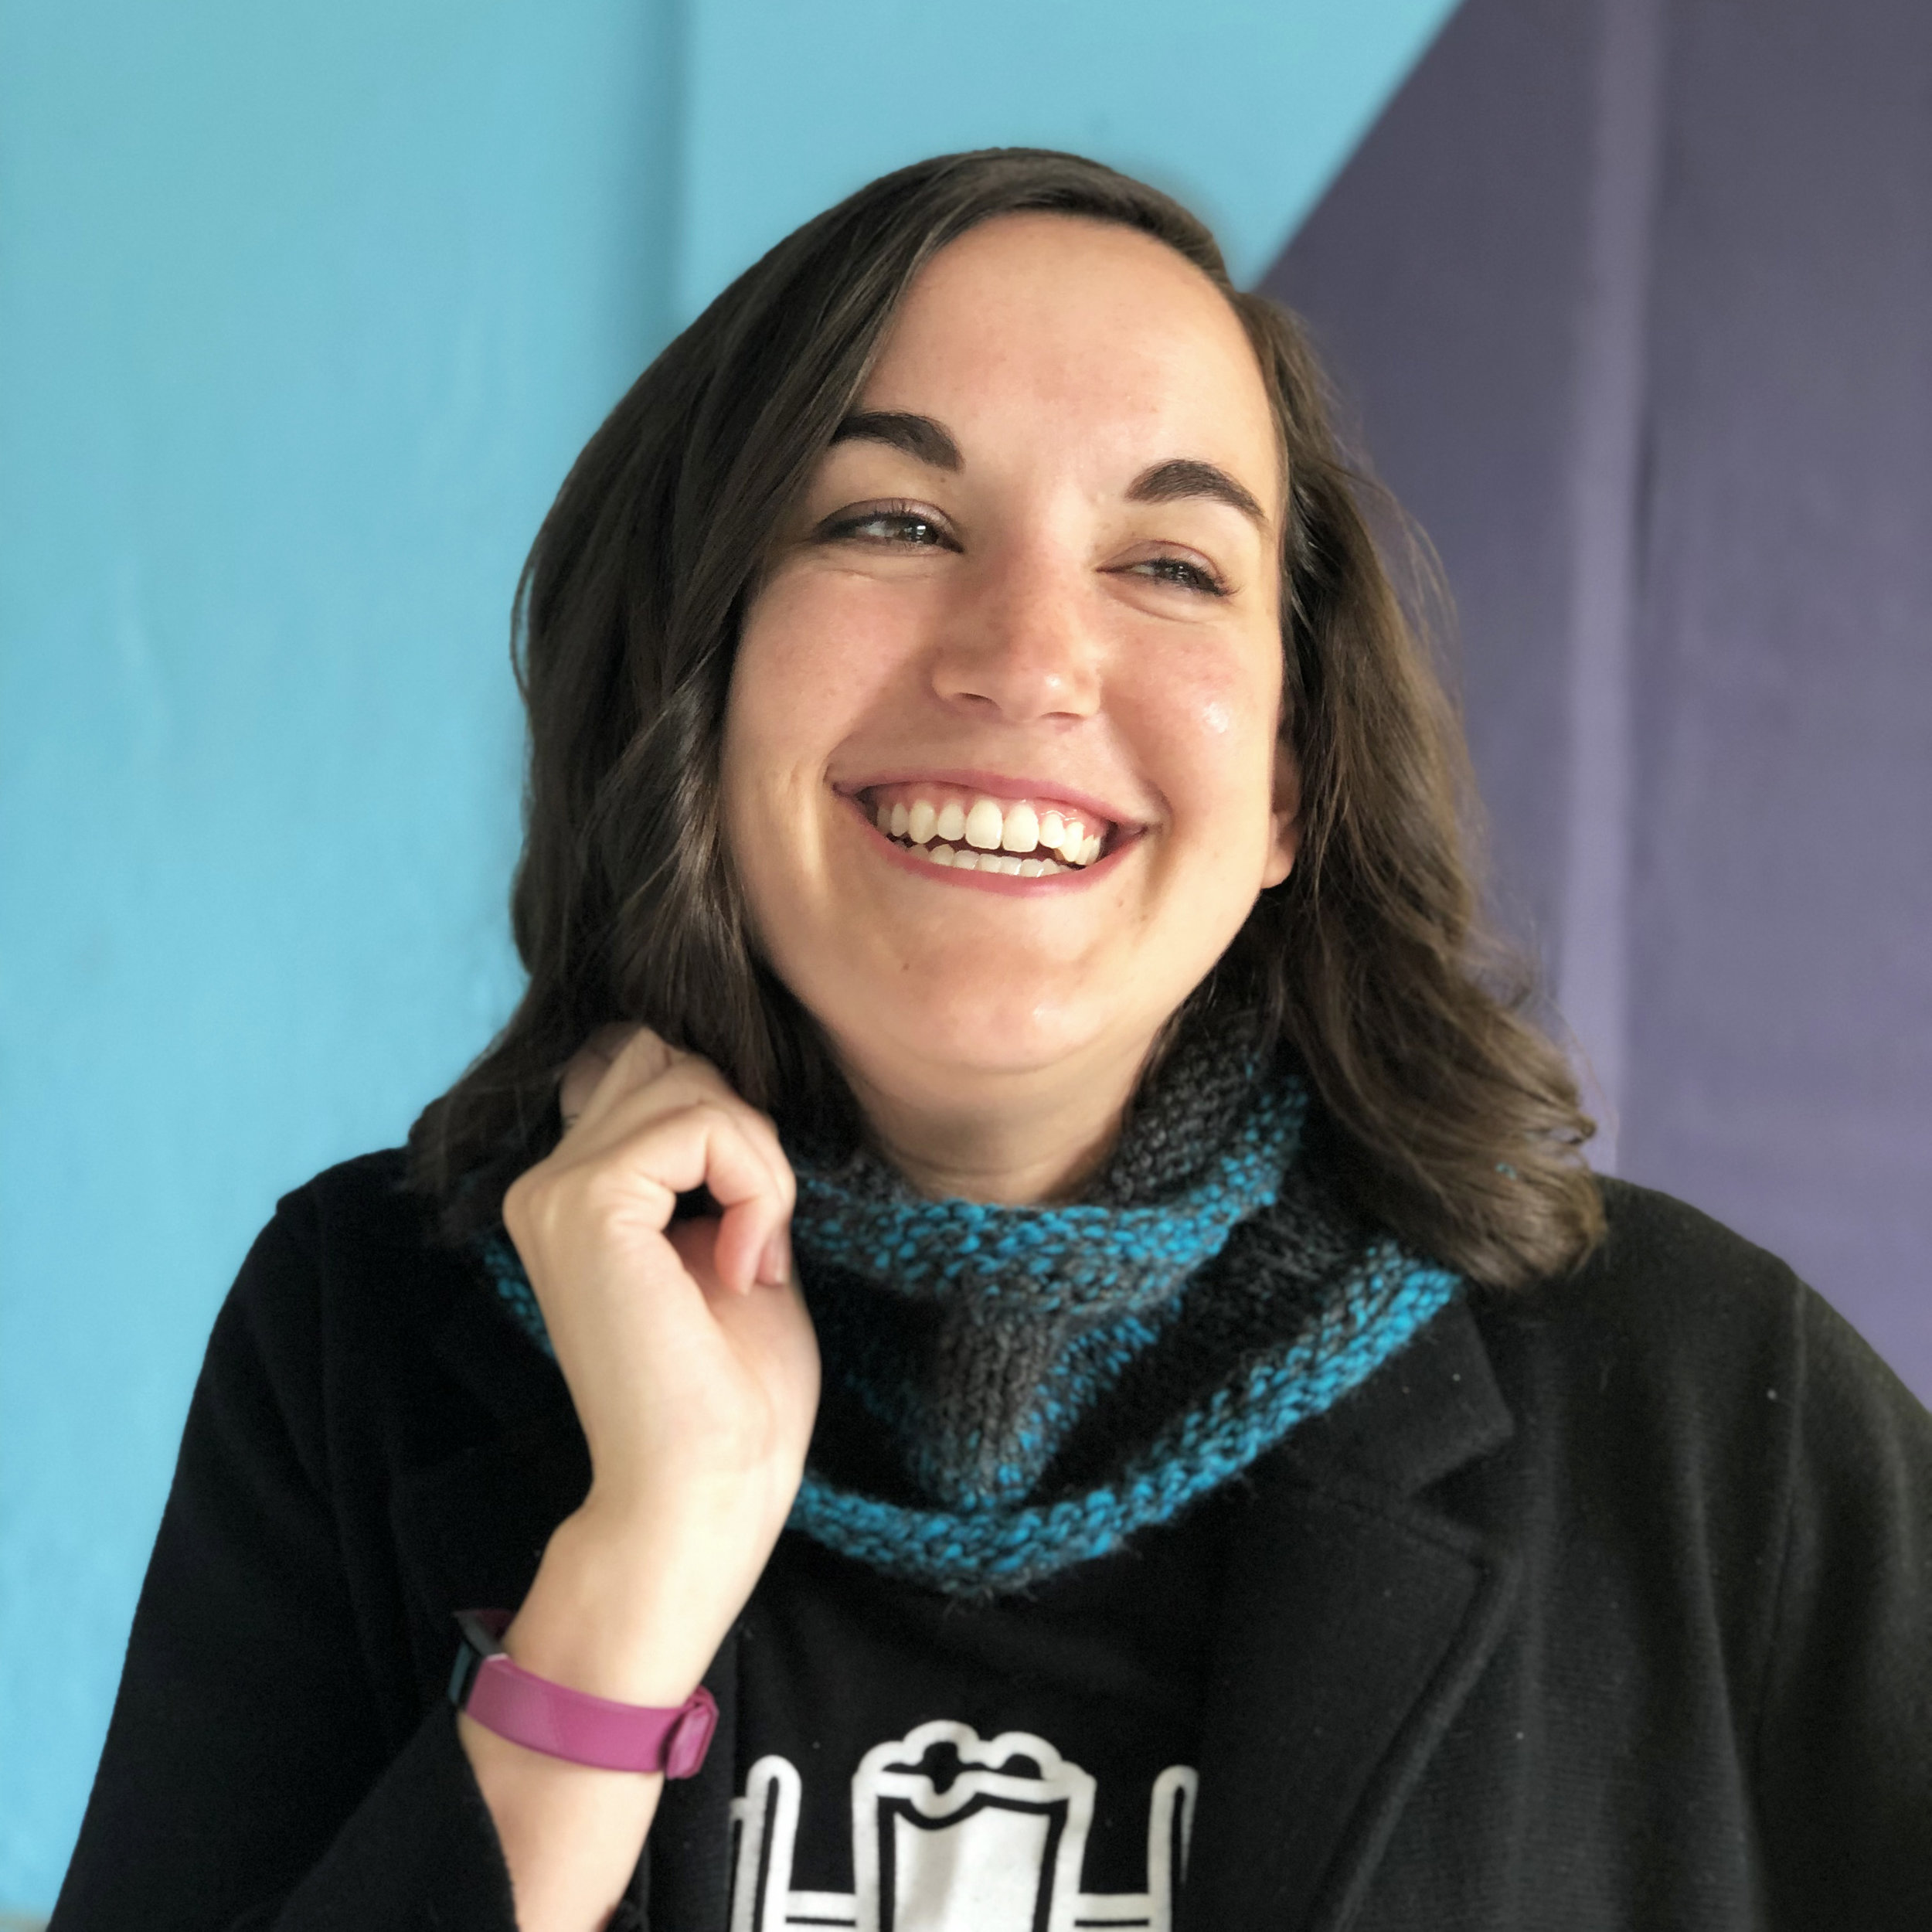 Knit Cowl Brittany Square.jpg